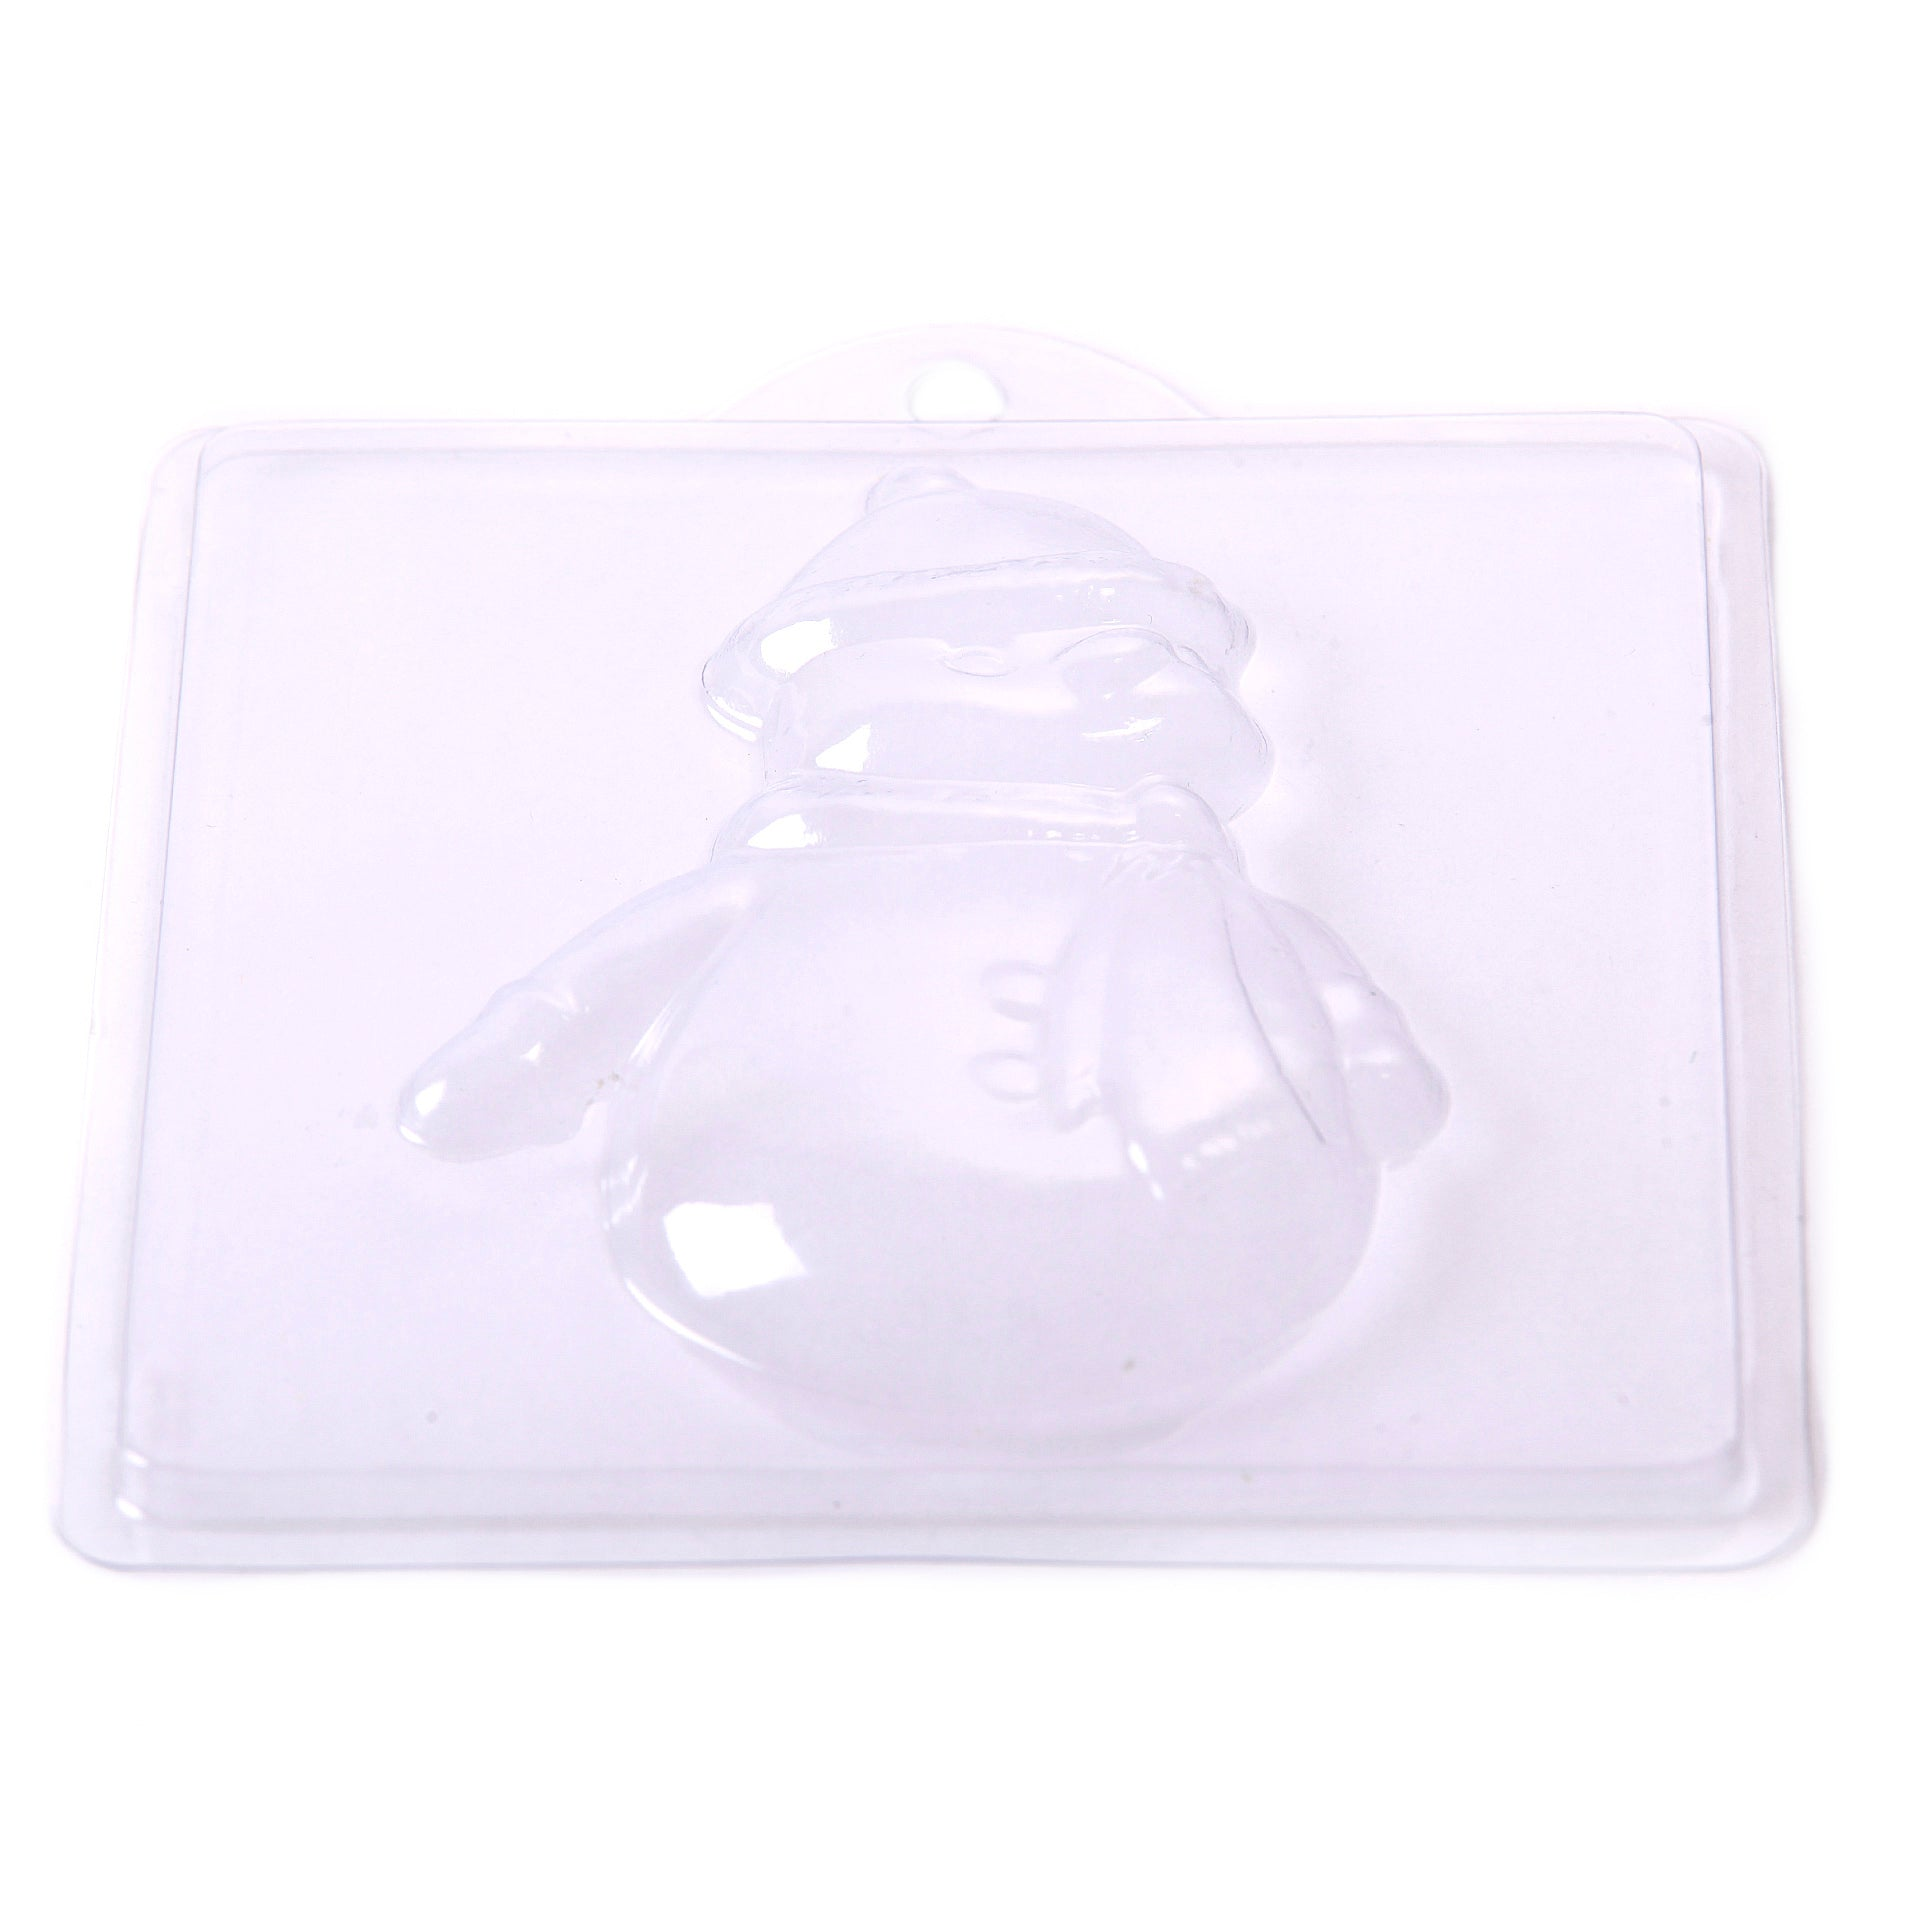 Snowman with Scarf PVC Mould (4 Cavity) N16